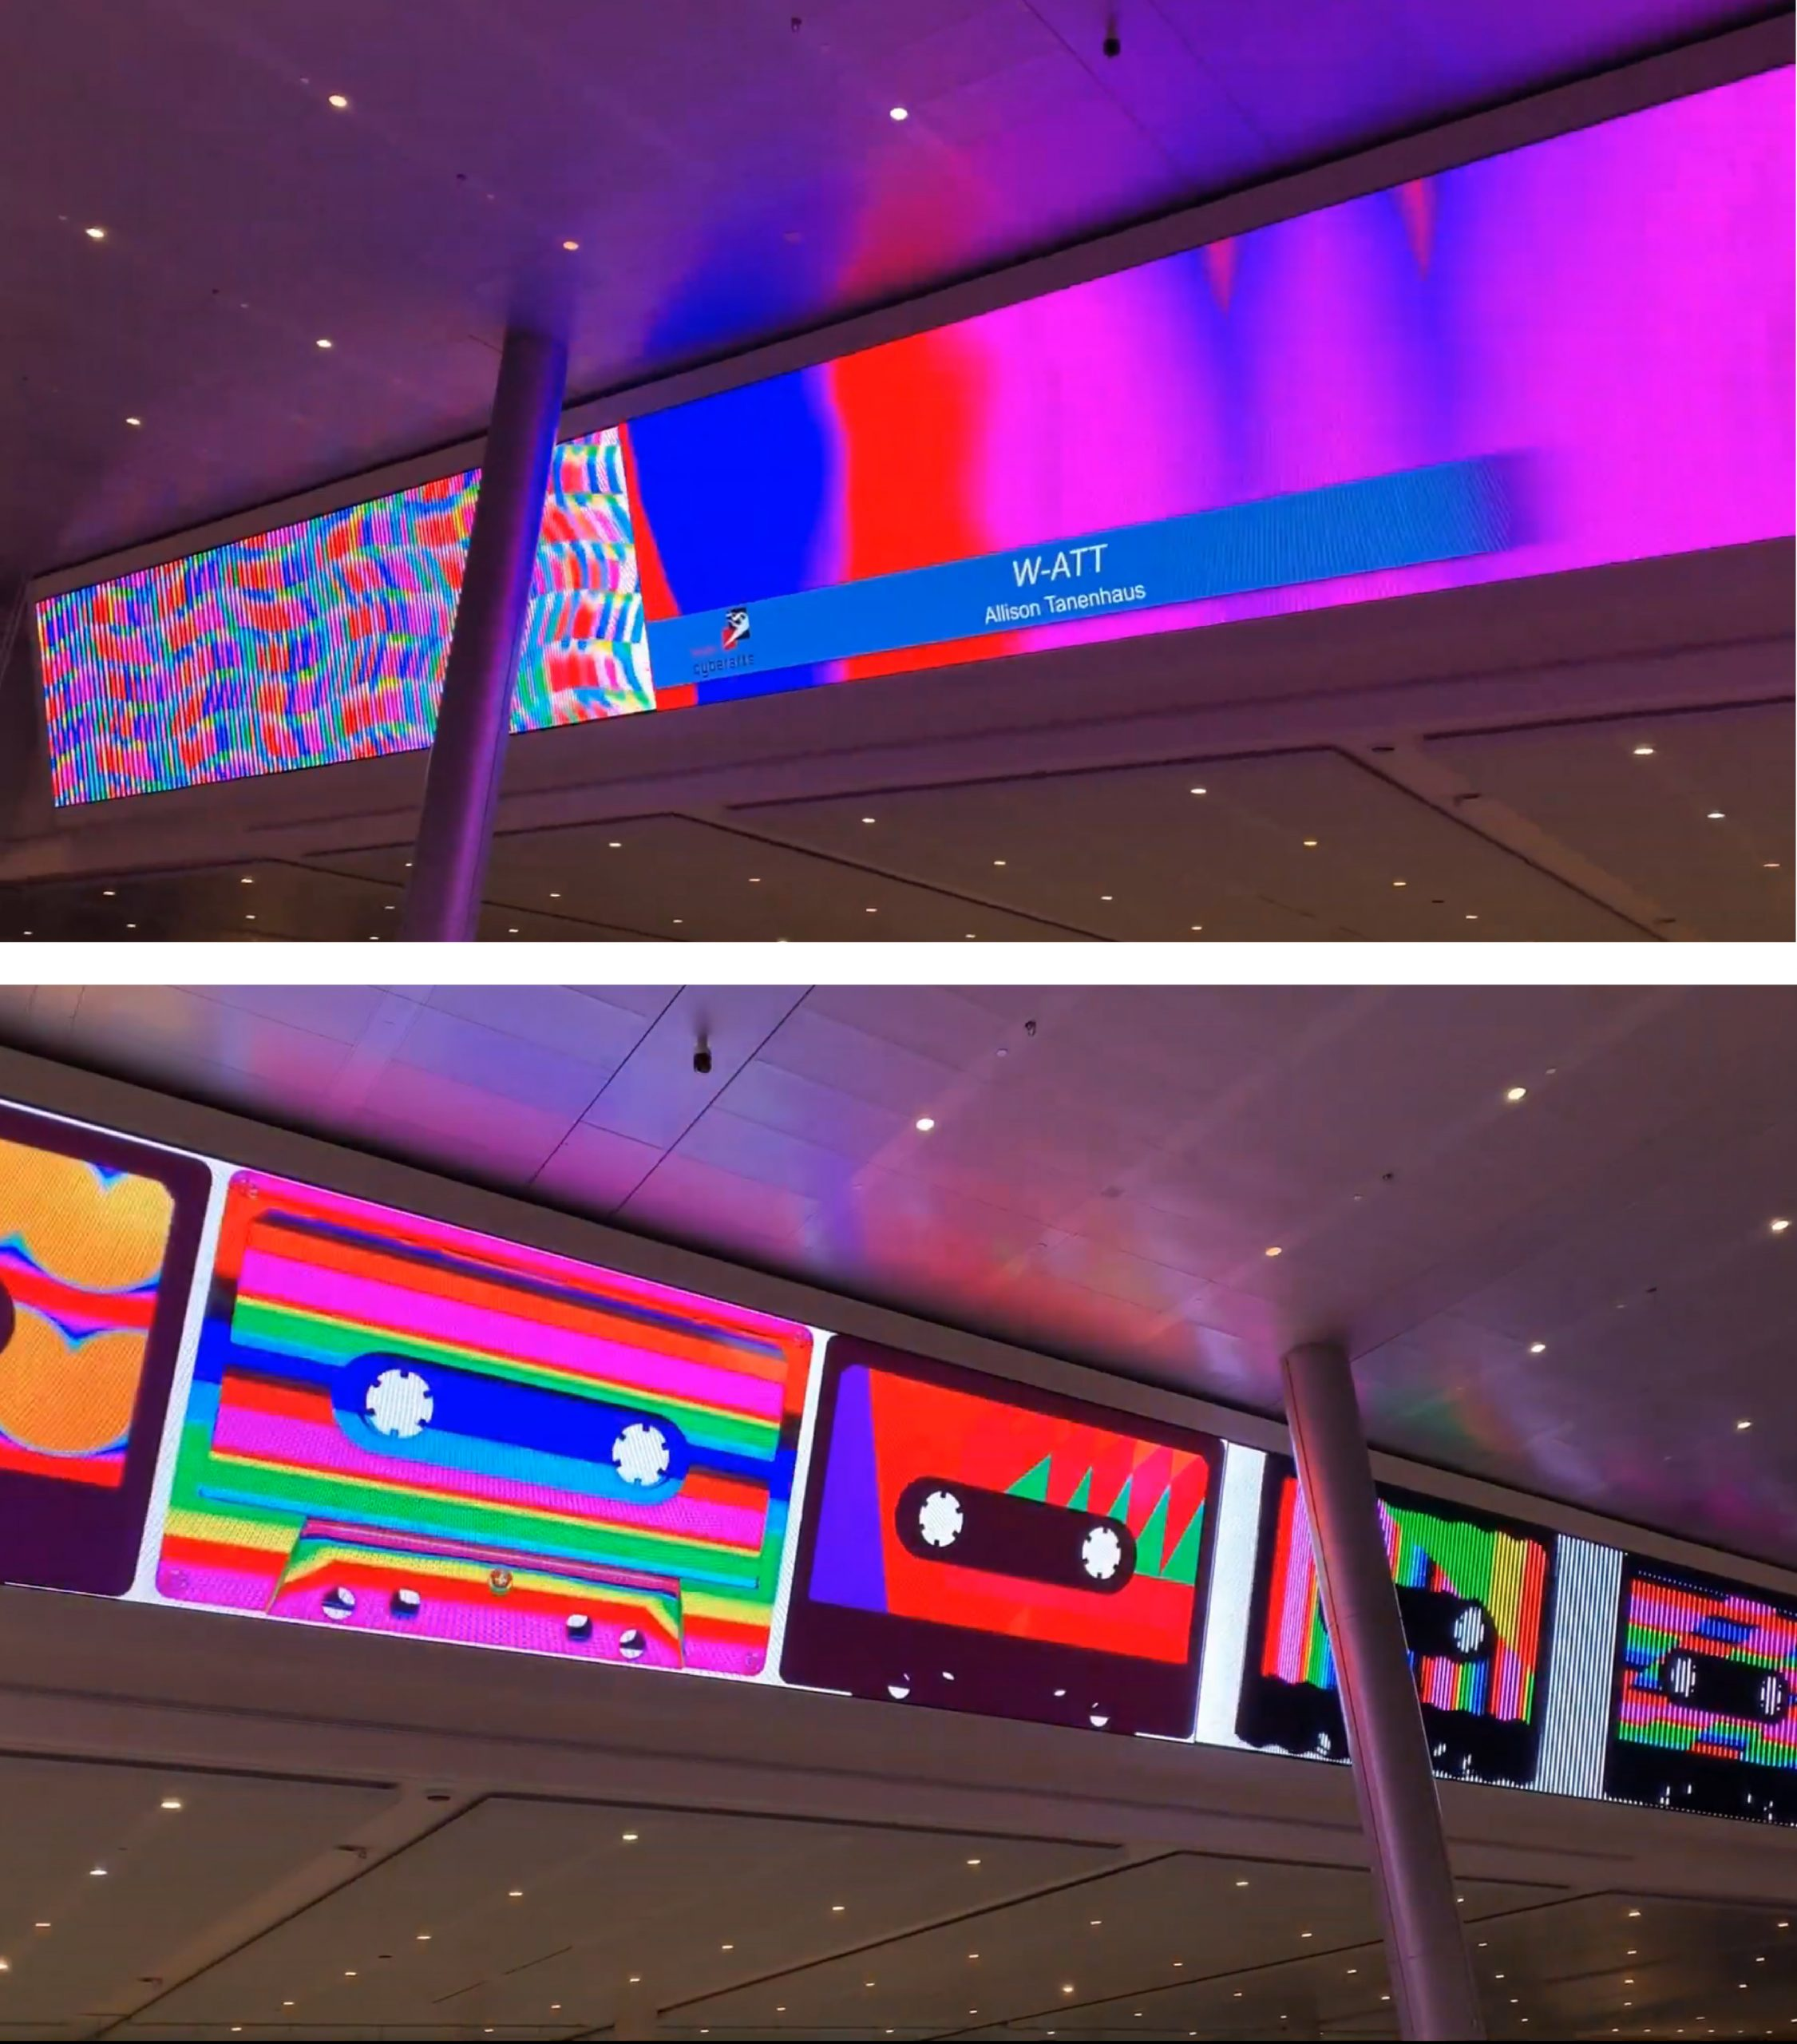 Video Wall: W-ATT